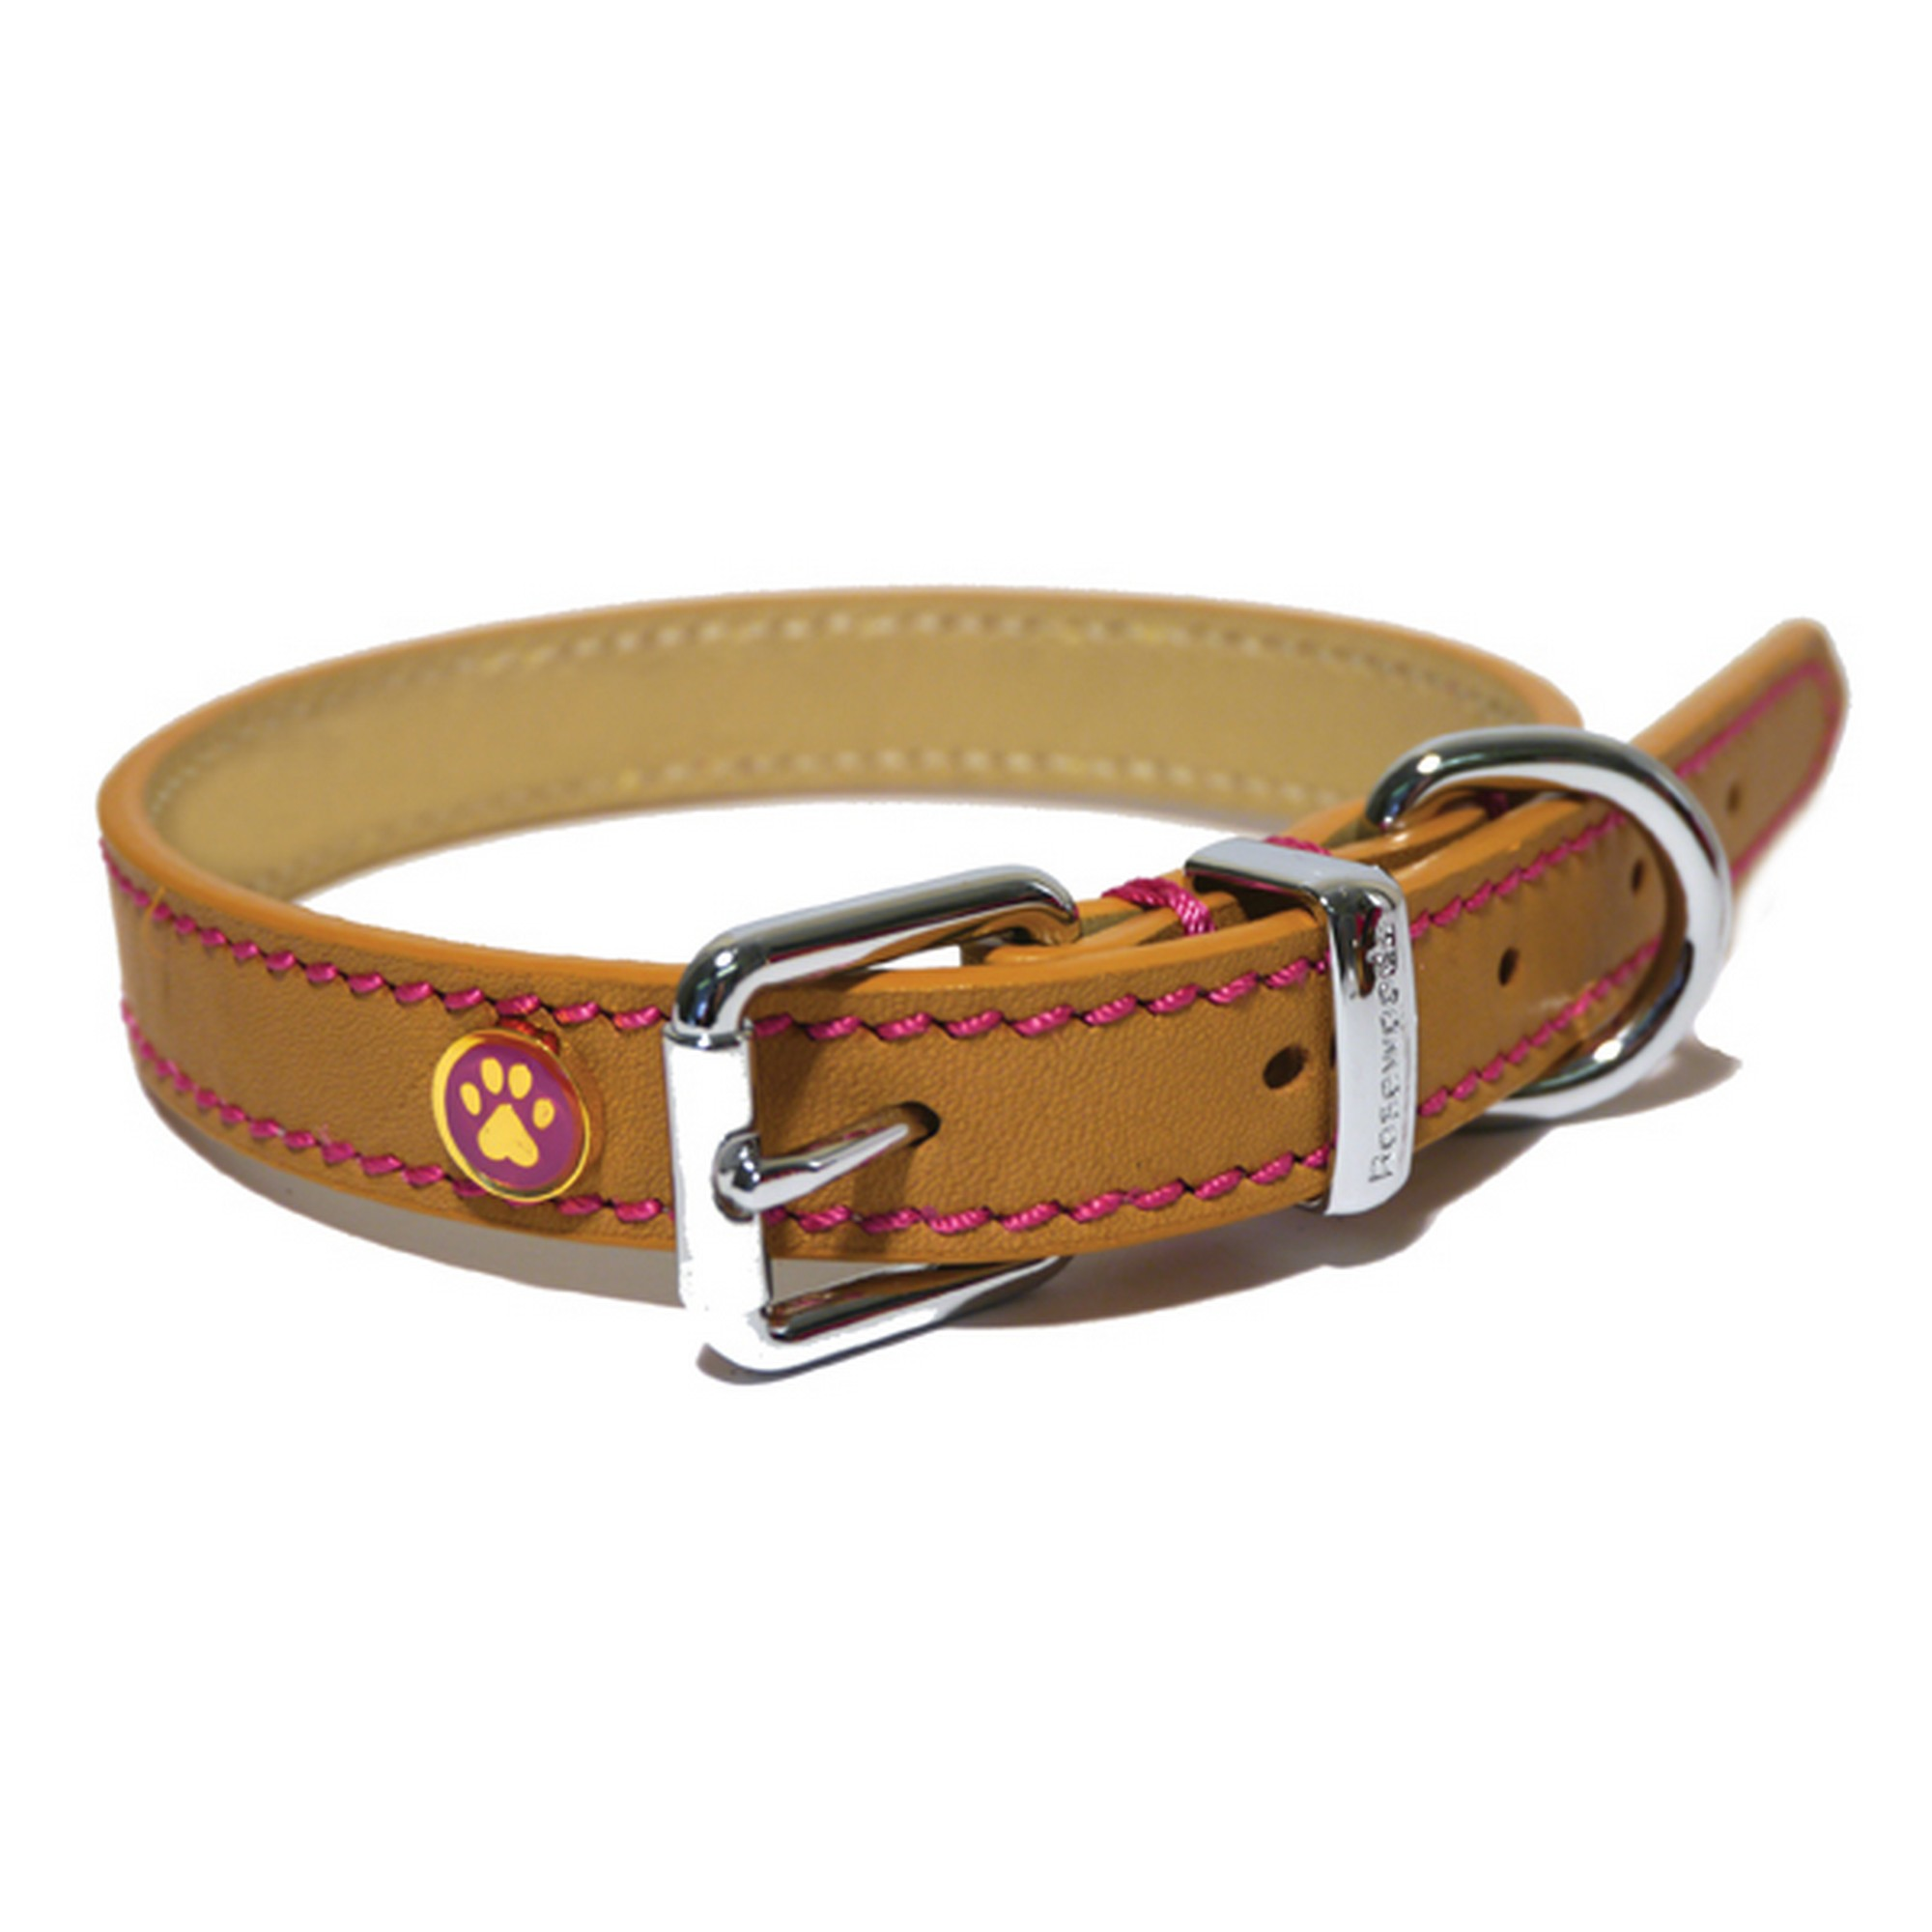 Rosewood Leather Dog Collar